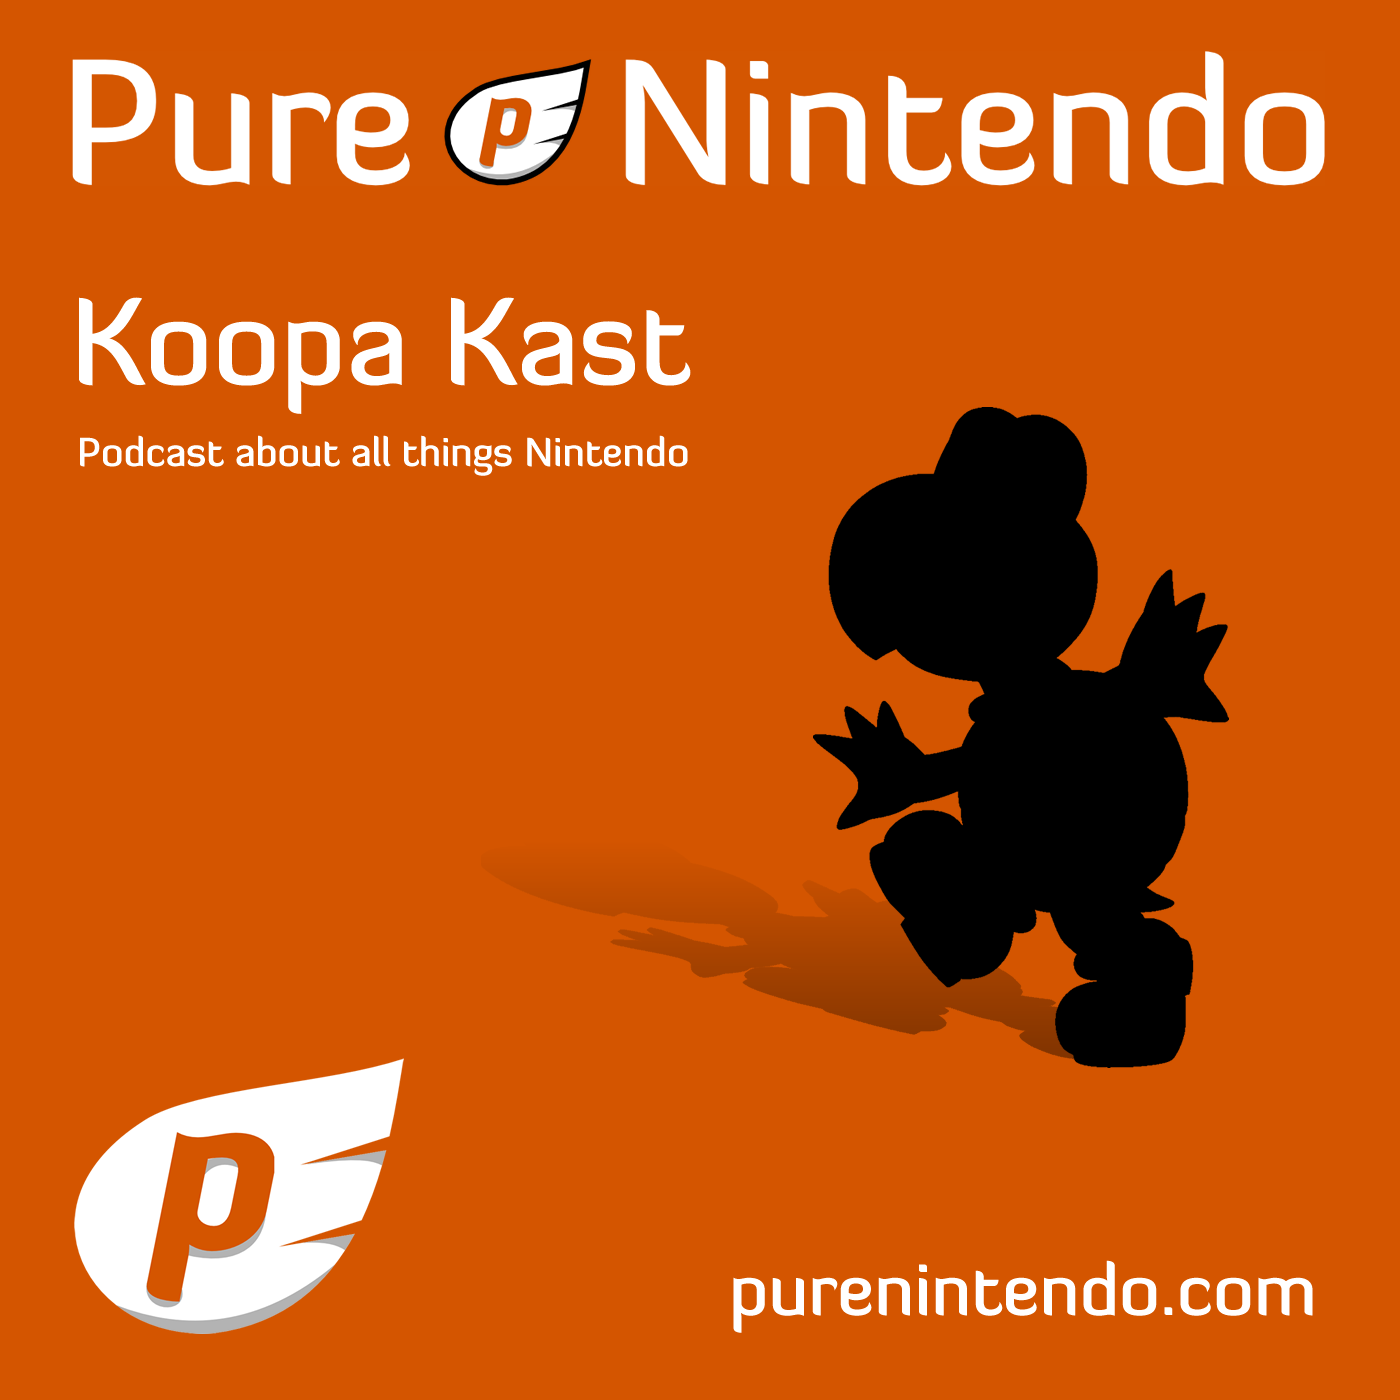 Koopa Kast (10/2/13) starts at 8 PM EST